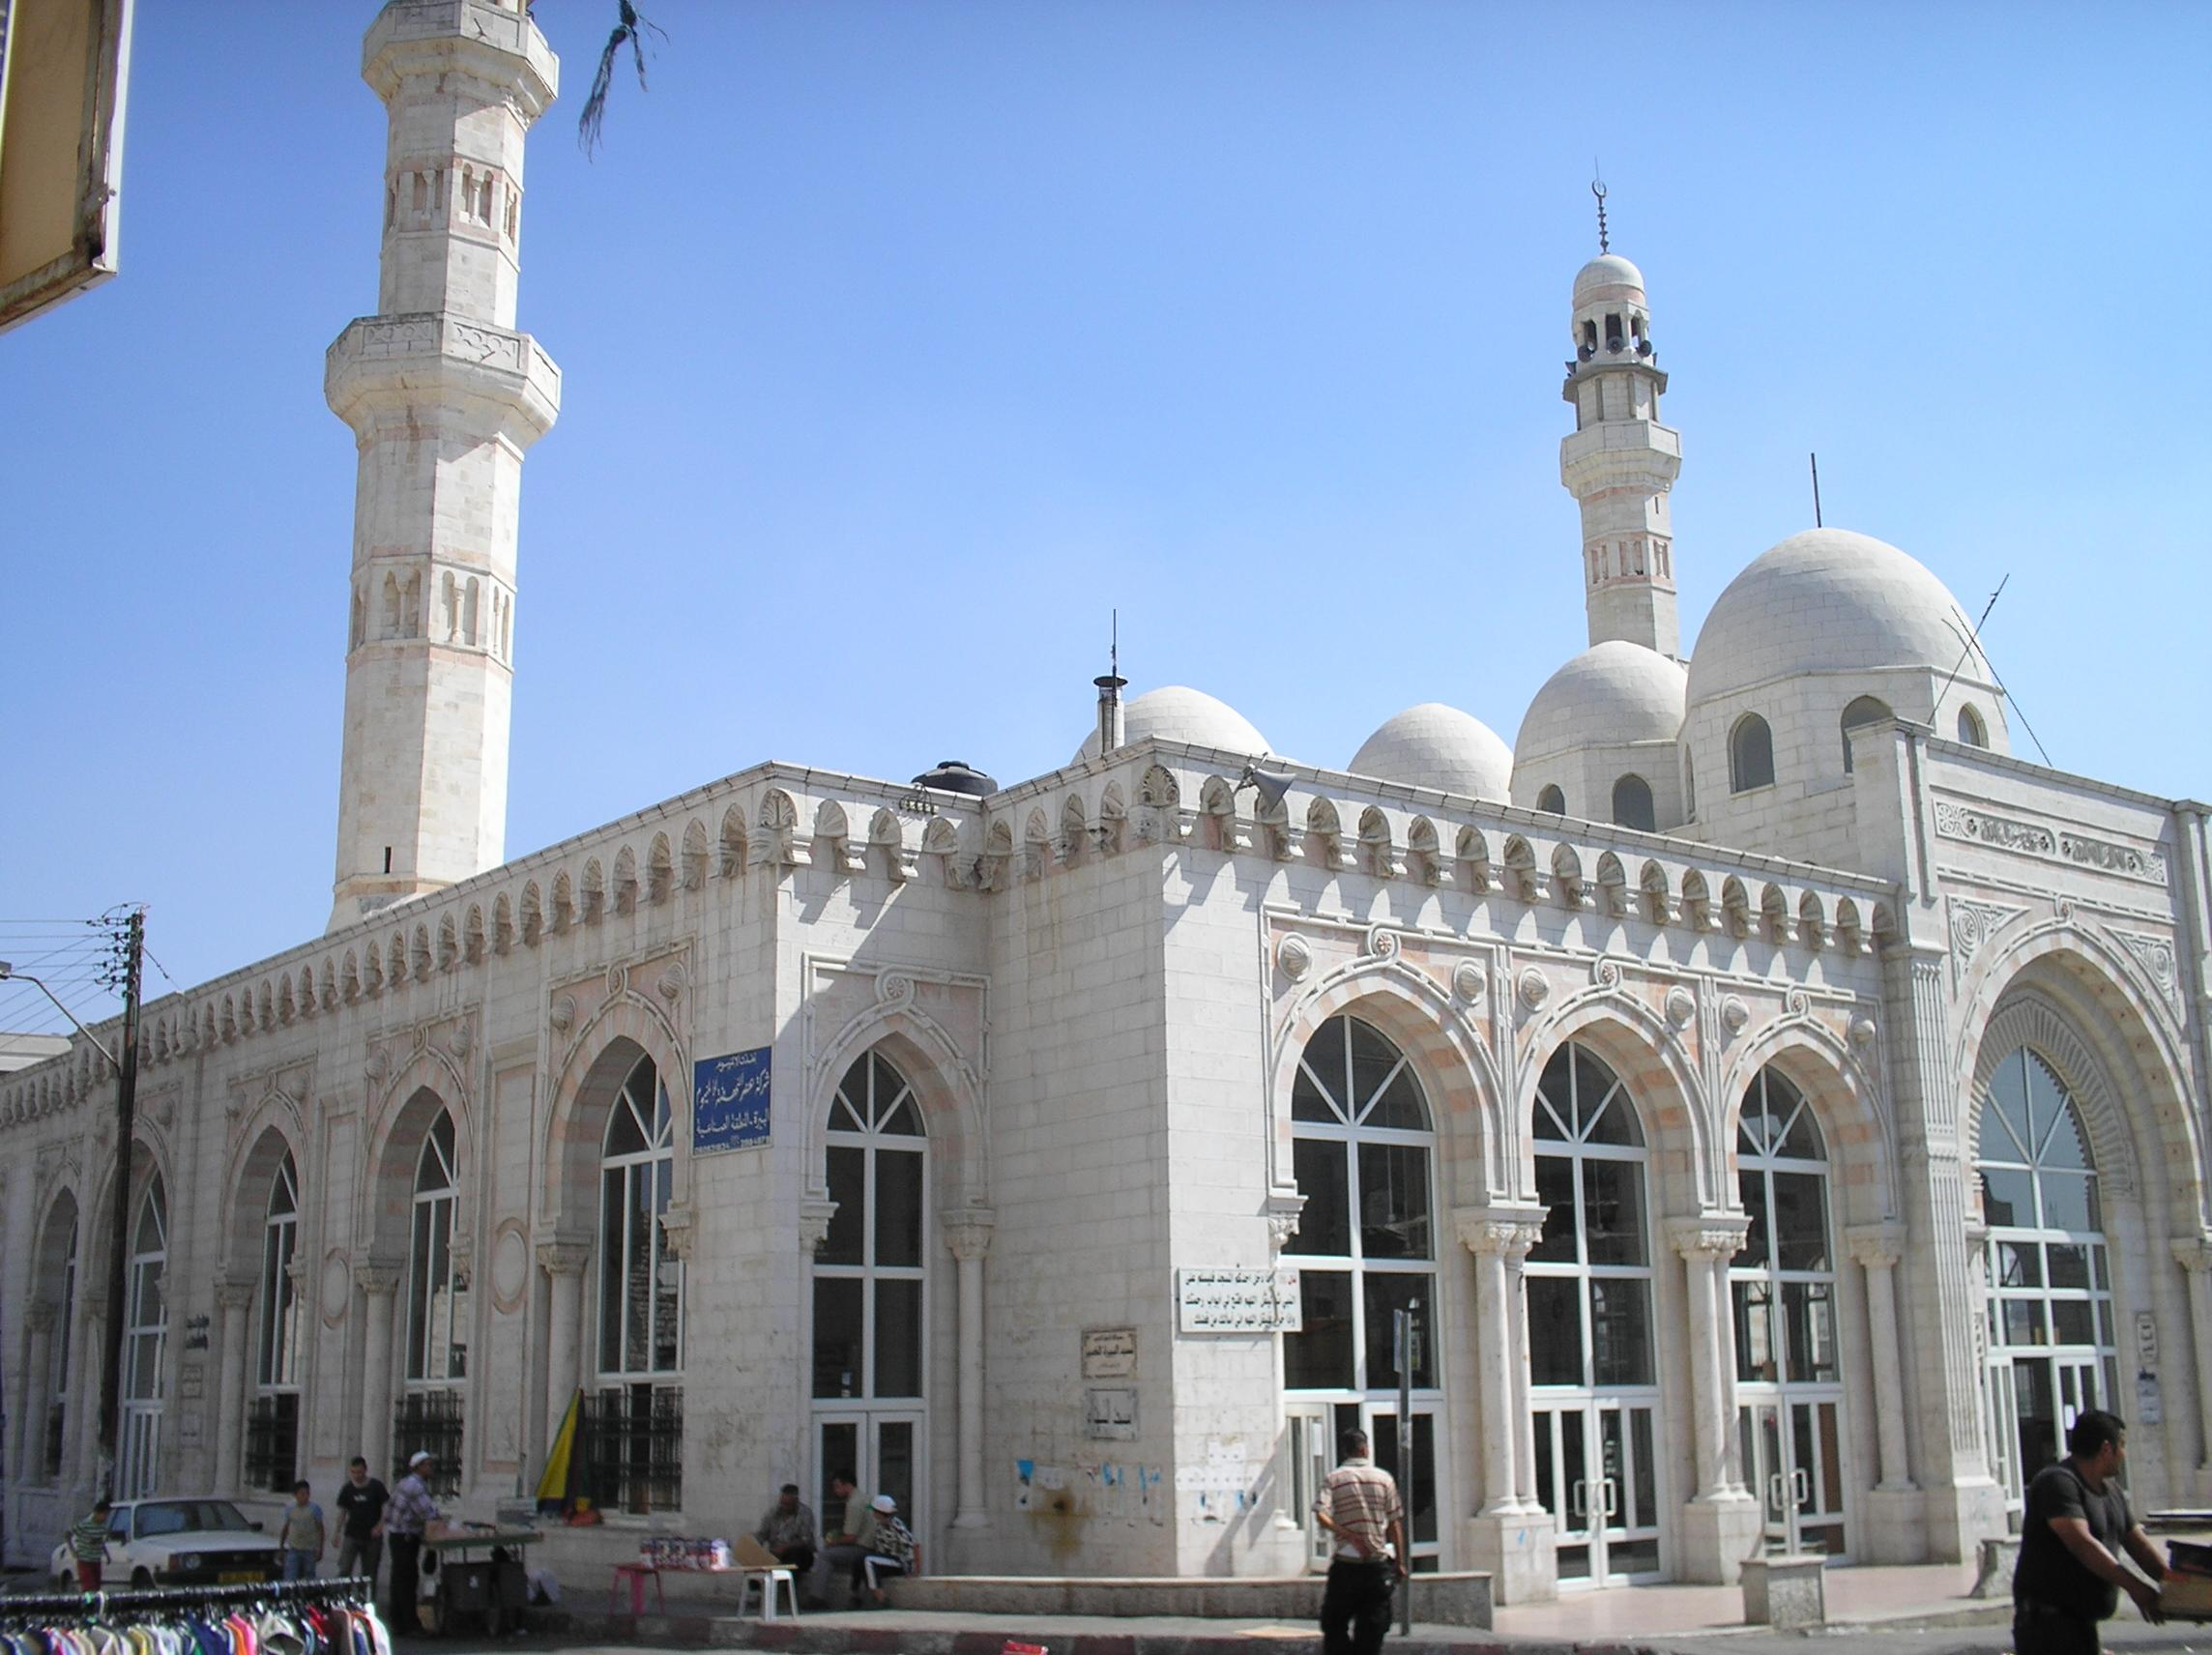 Ramallah - رام الله : Jamal Abdel-Naser's Mosque, named after the late Arab leader